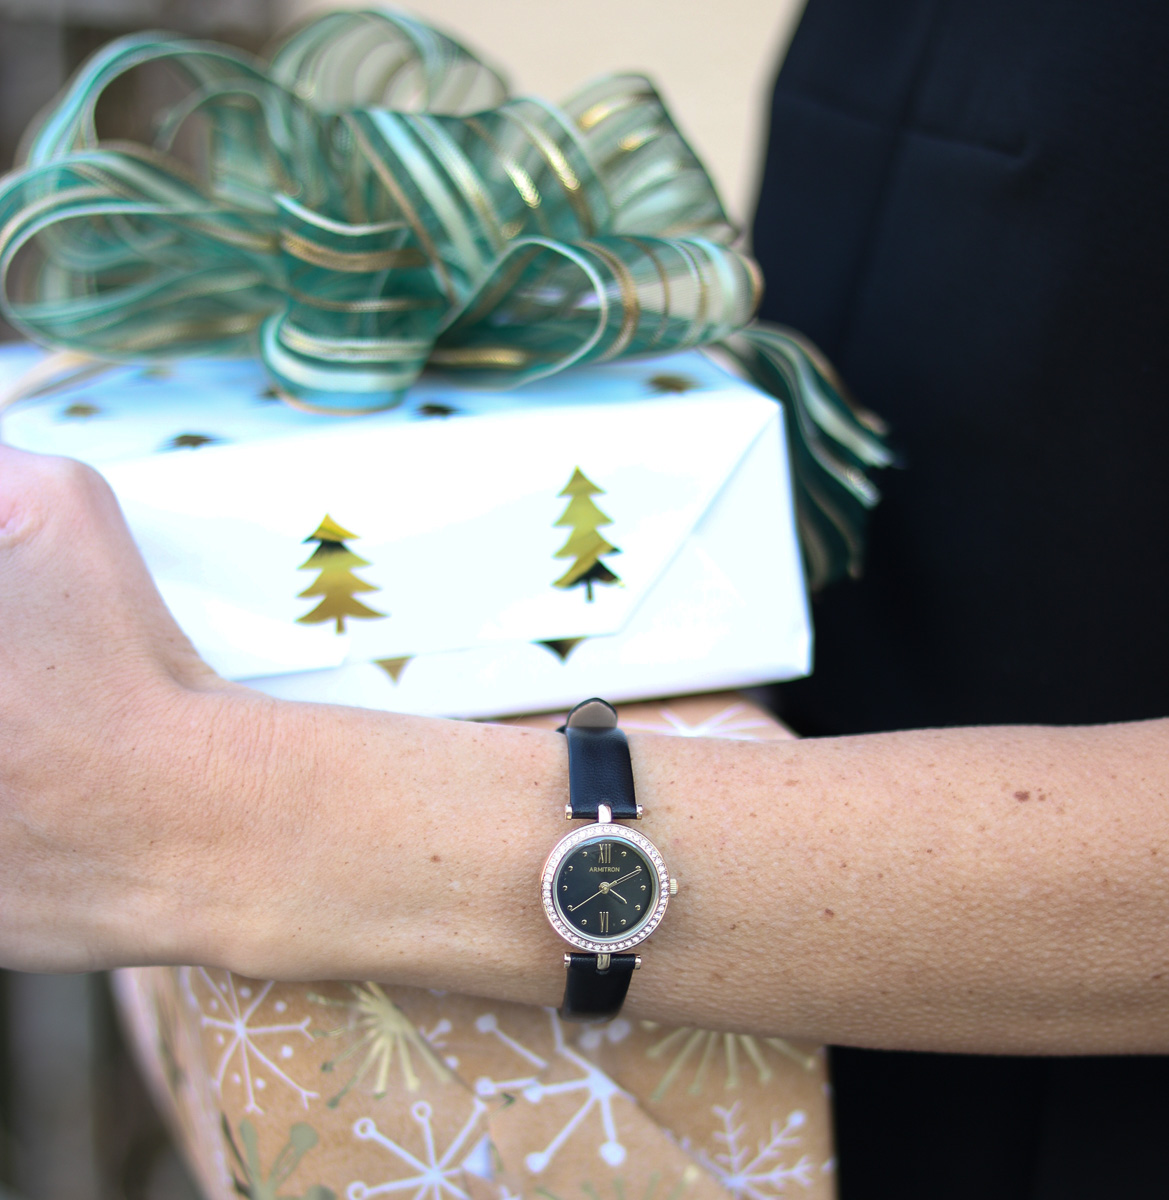 Armitron Watches - The Perfect Gift for the Holidays | Cobalt Chronicles | Washington, DC | Style Blogger